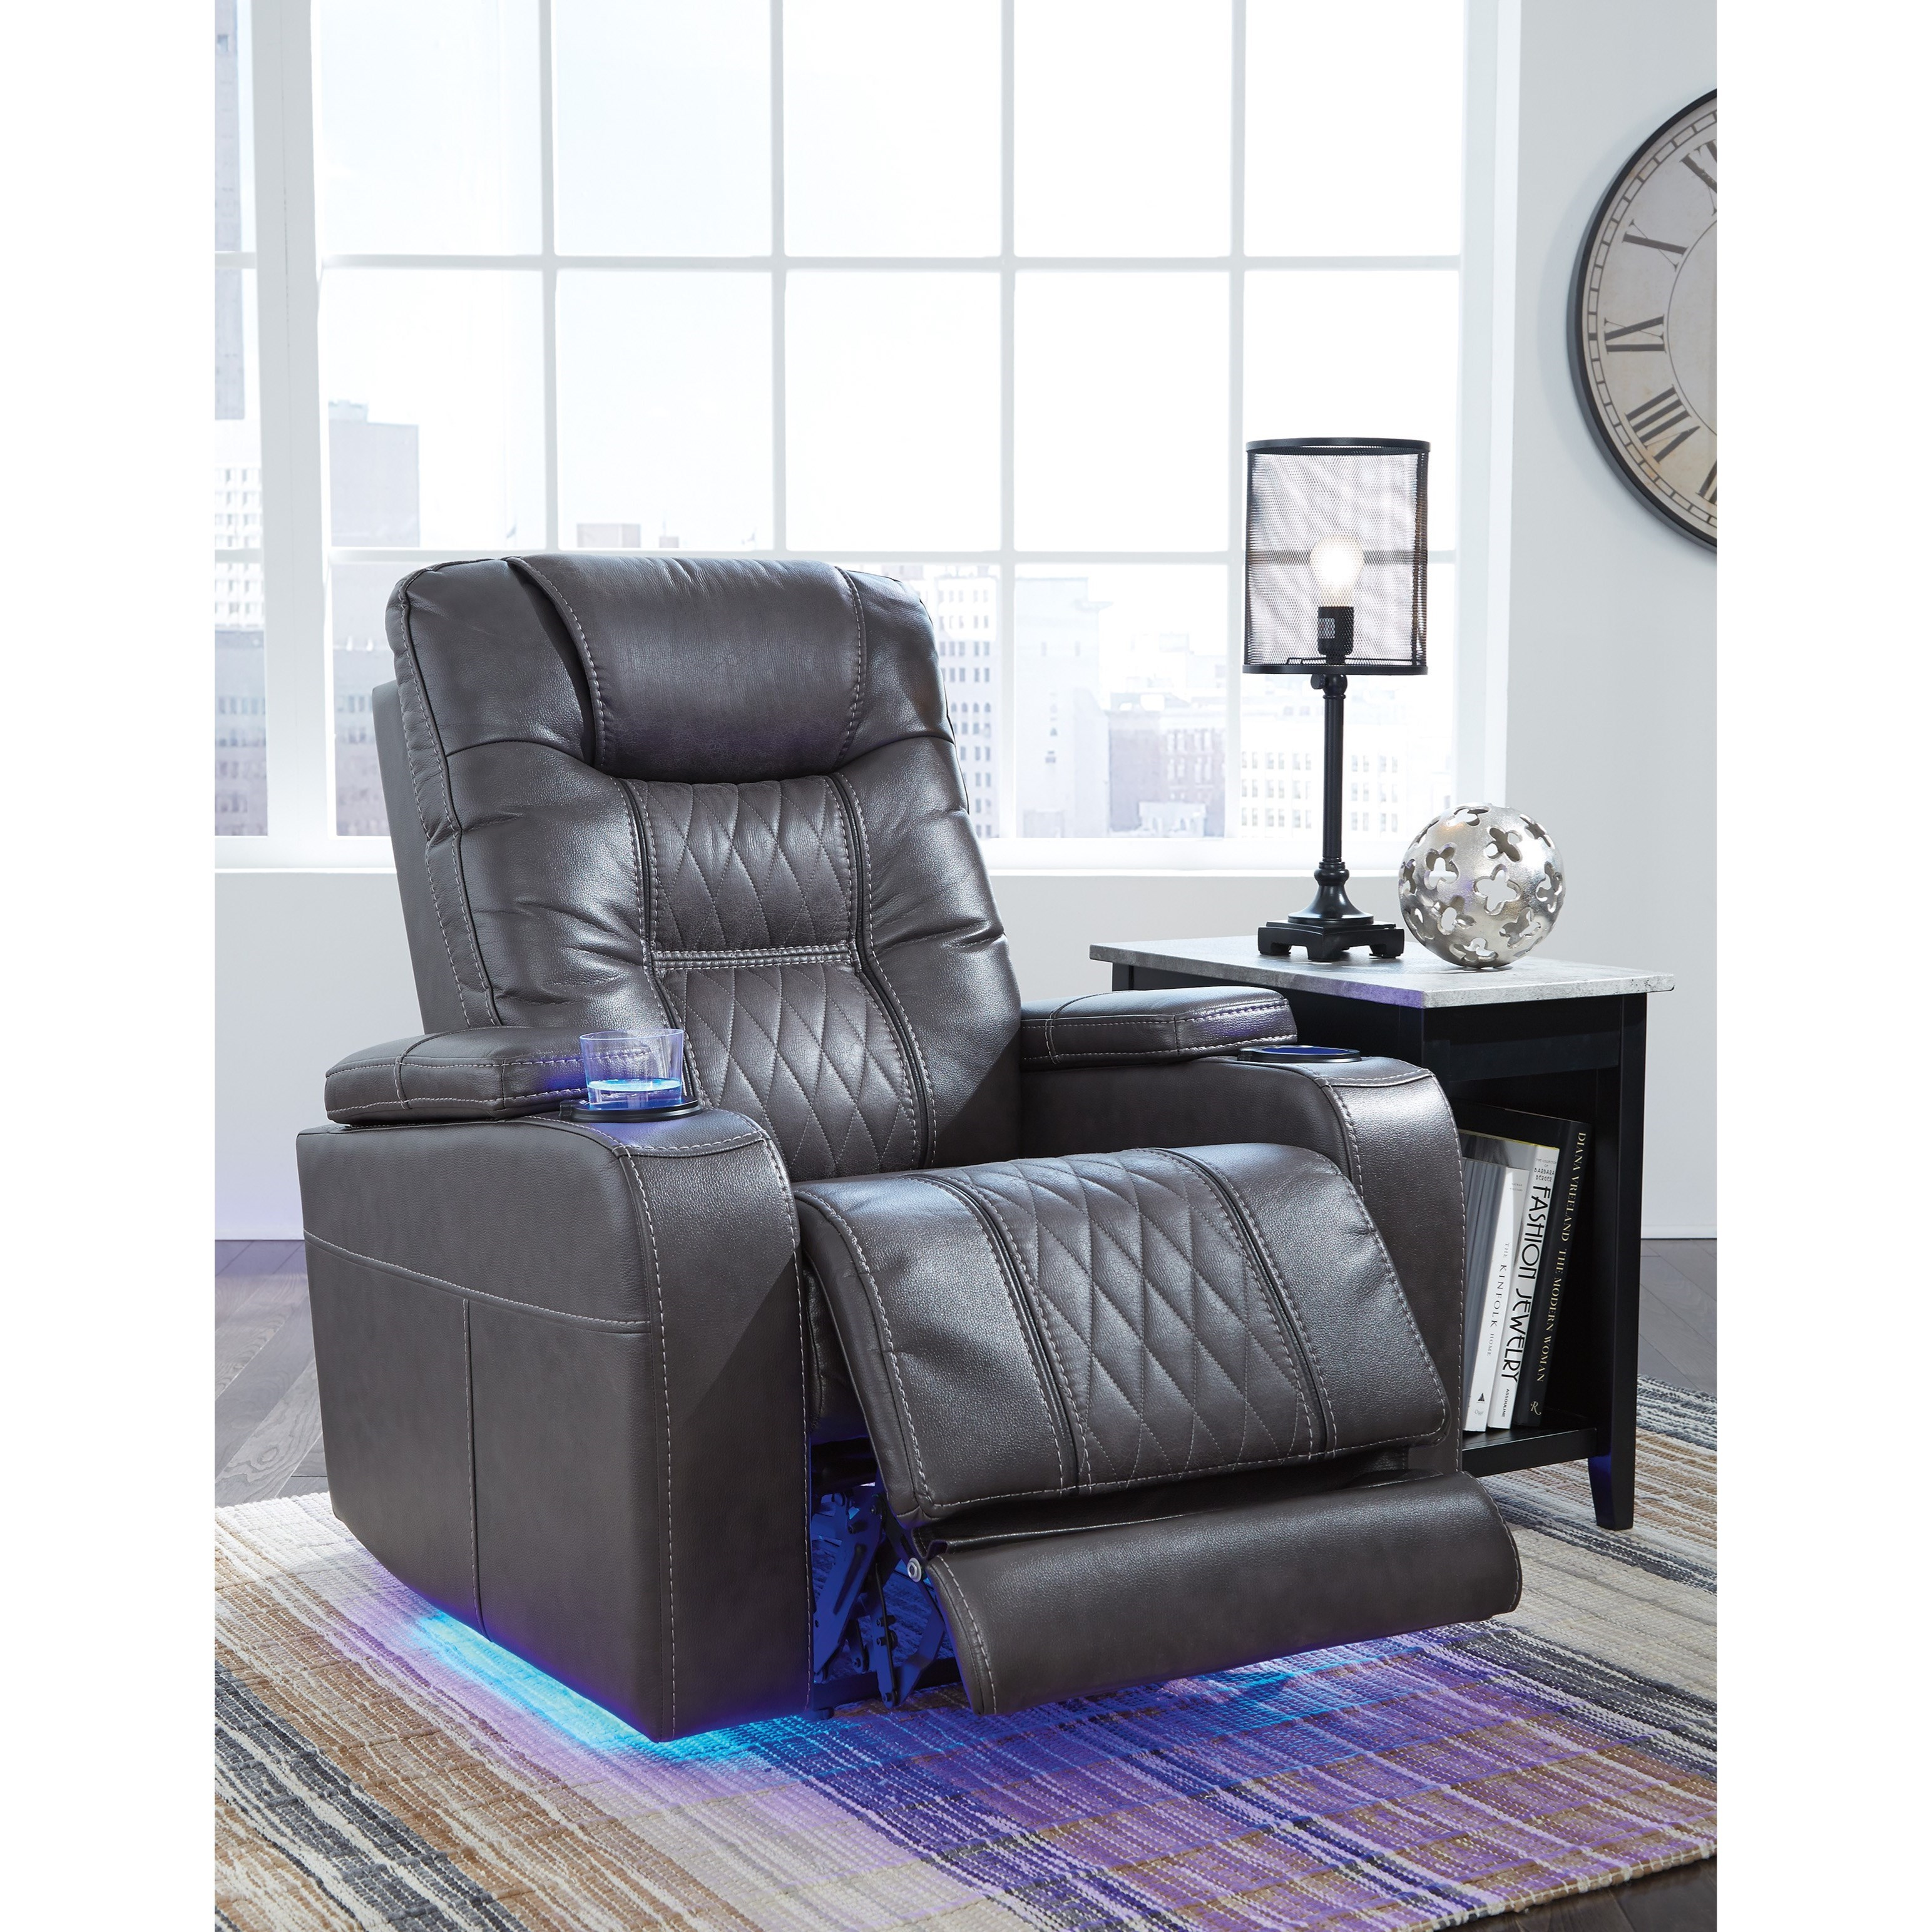 Ashley Furniture Sale In Store: Signature Design By Ashley Composer 2150613 Power Recliner